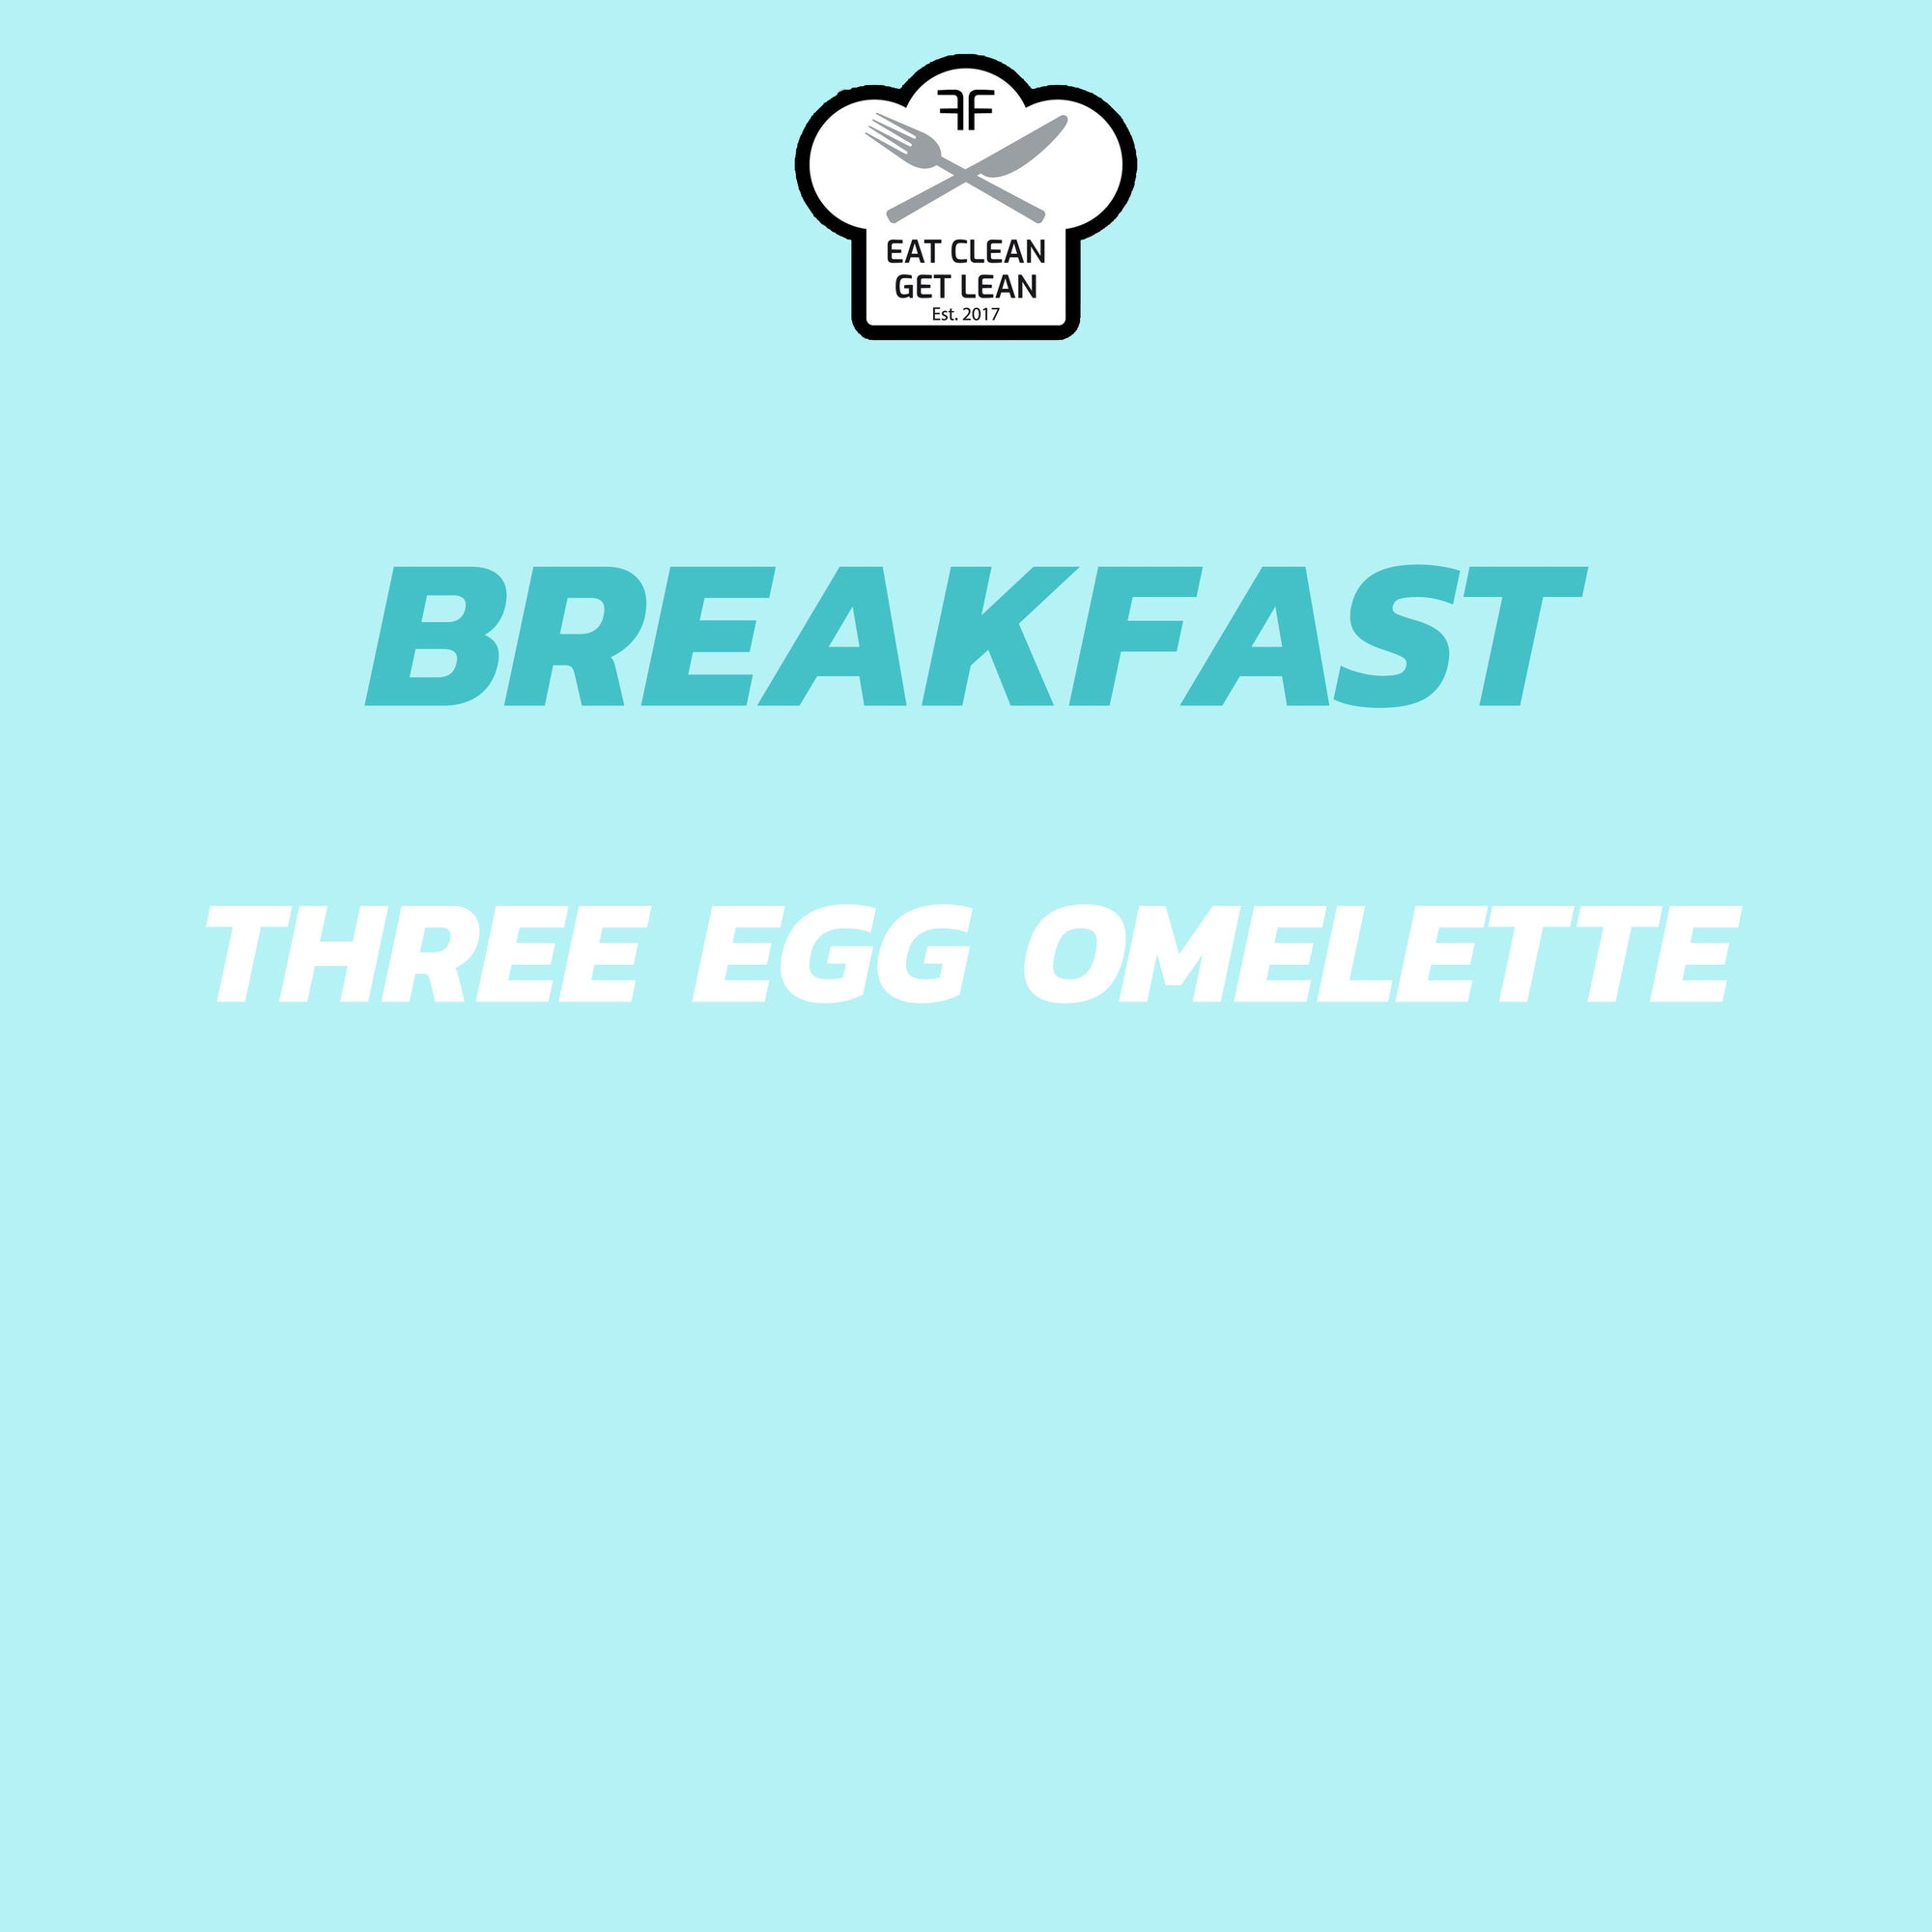 Breakfast - Three egg omelette